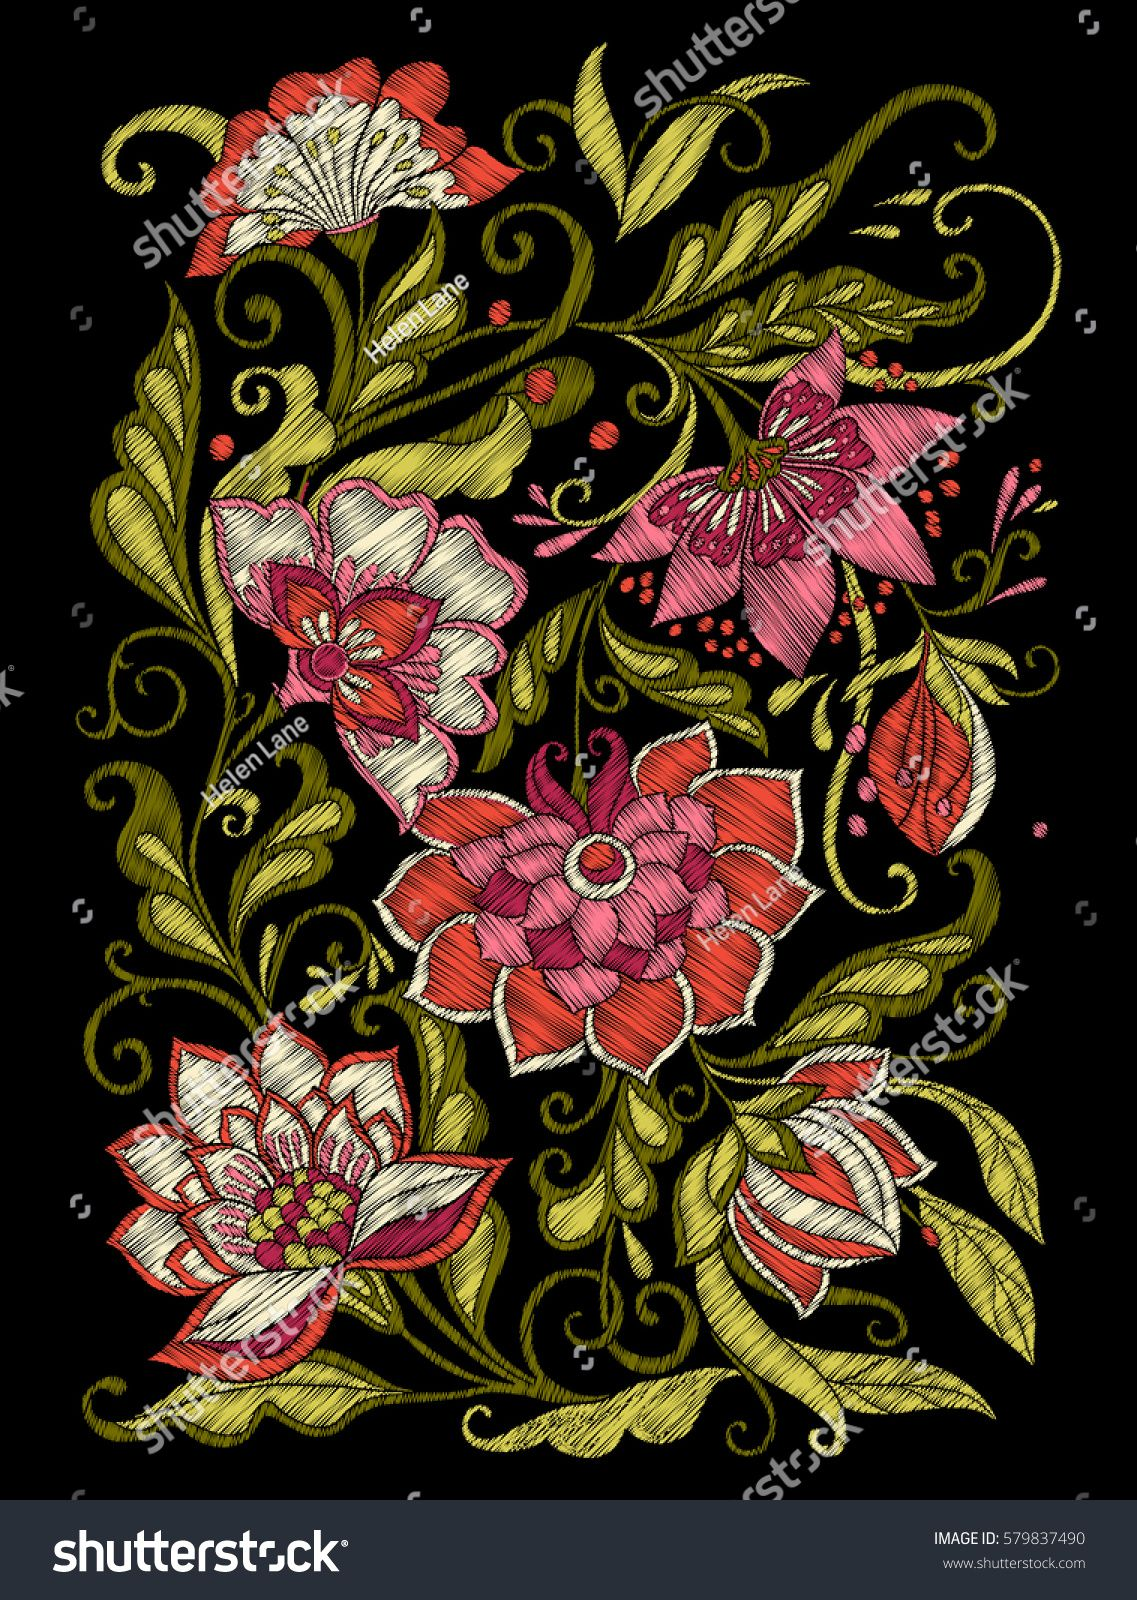 Embroidery embroidered design elements with flowers and leaves in